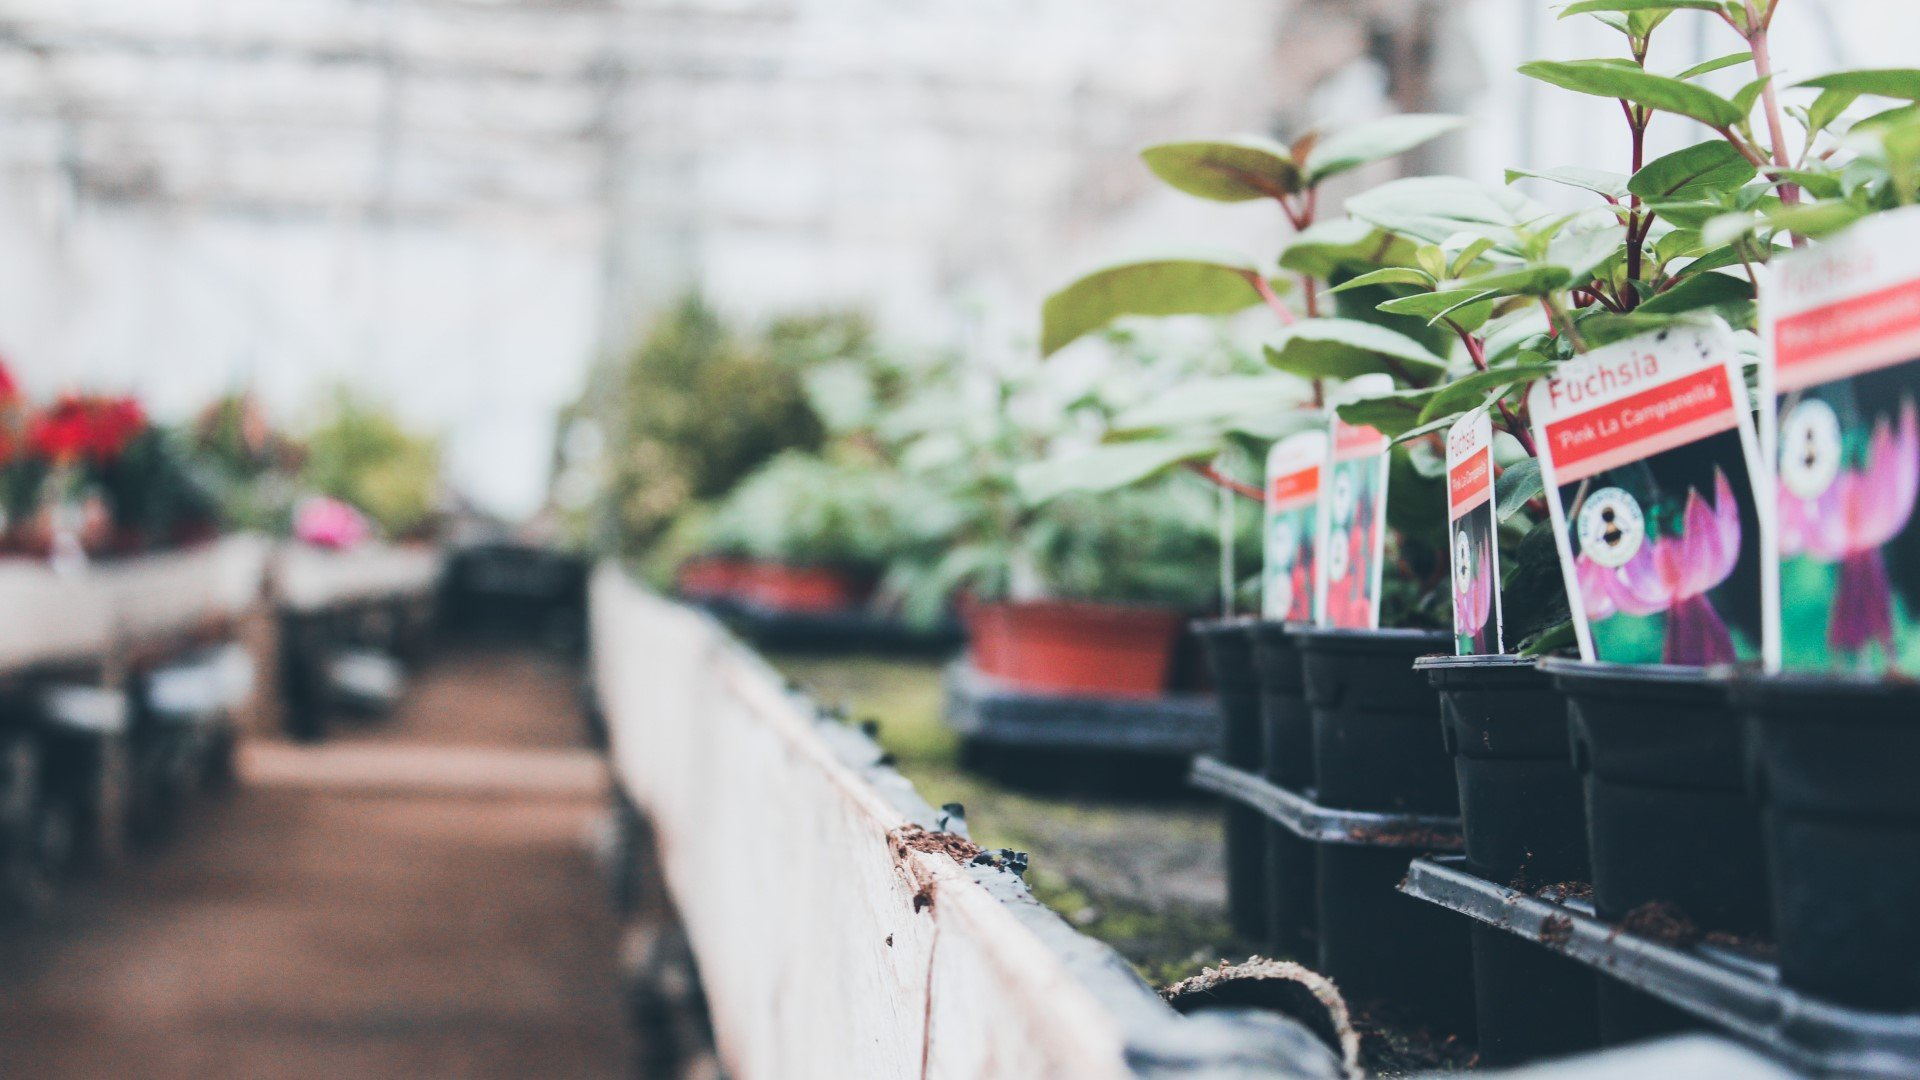 7 great garden centres to visit in Oxfordshire